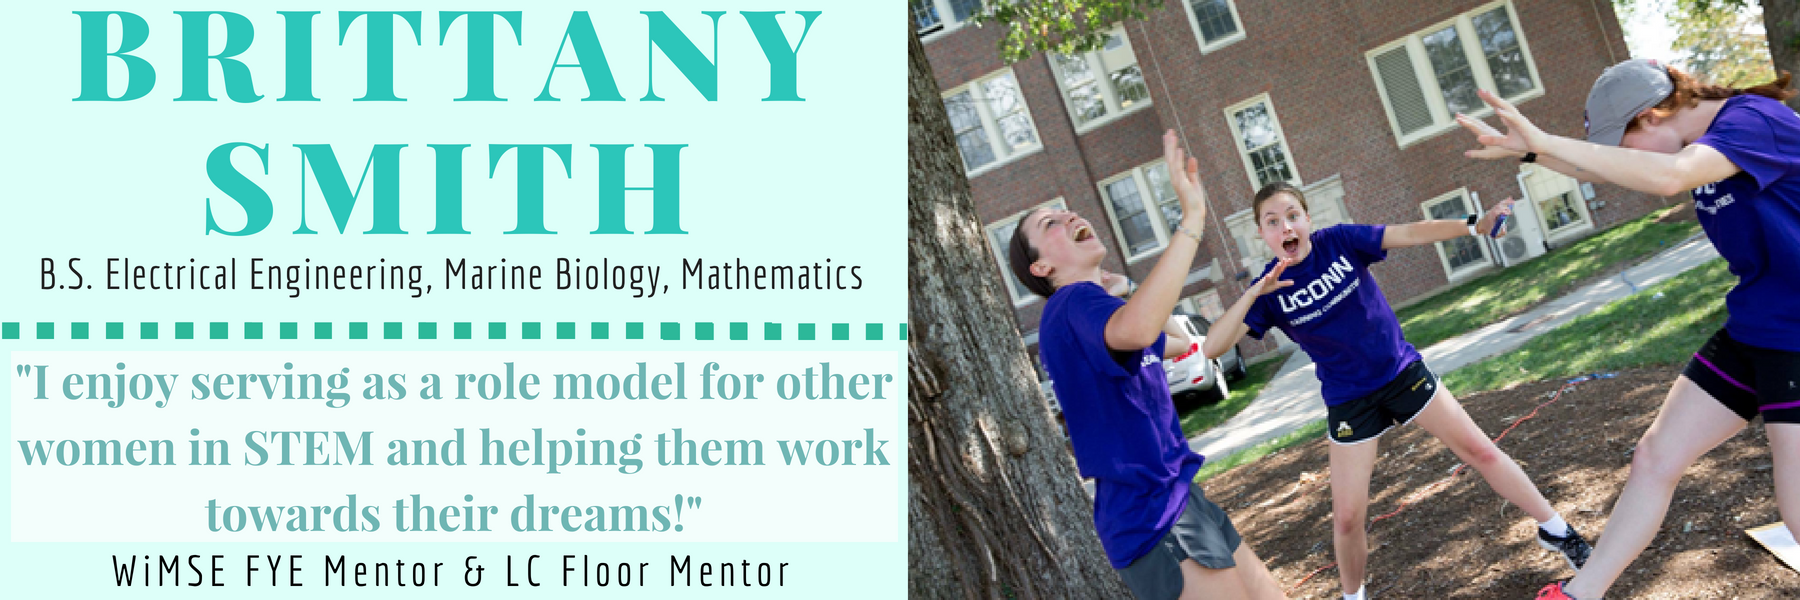 Brittany Smith Why I mentor